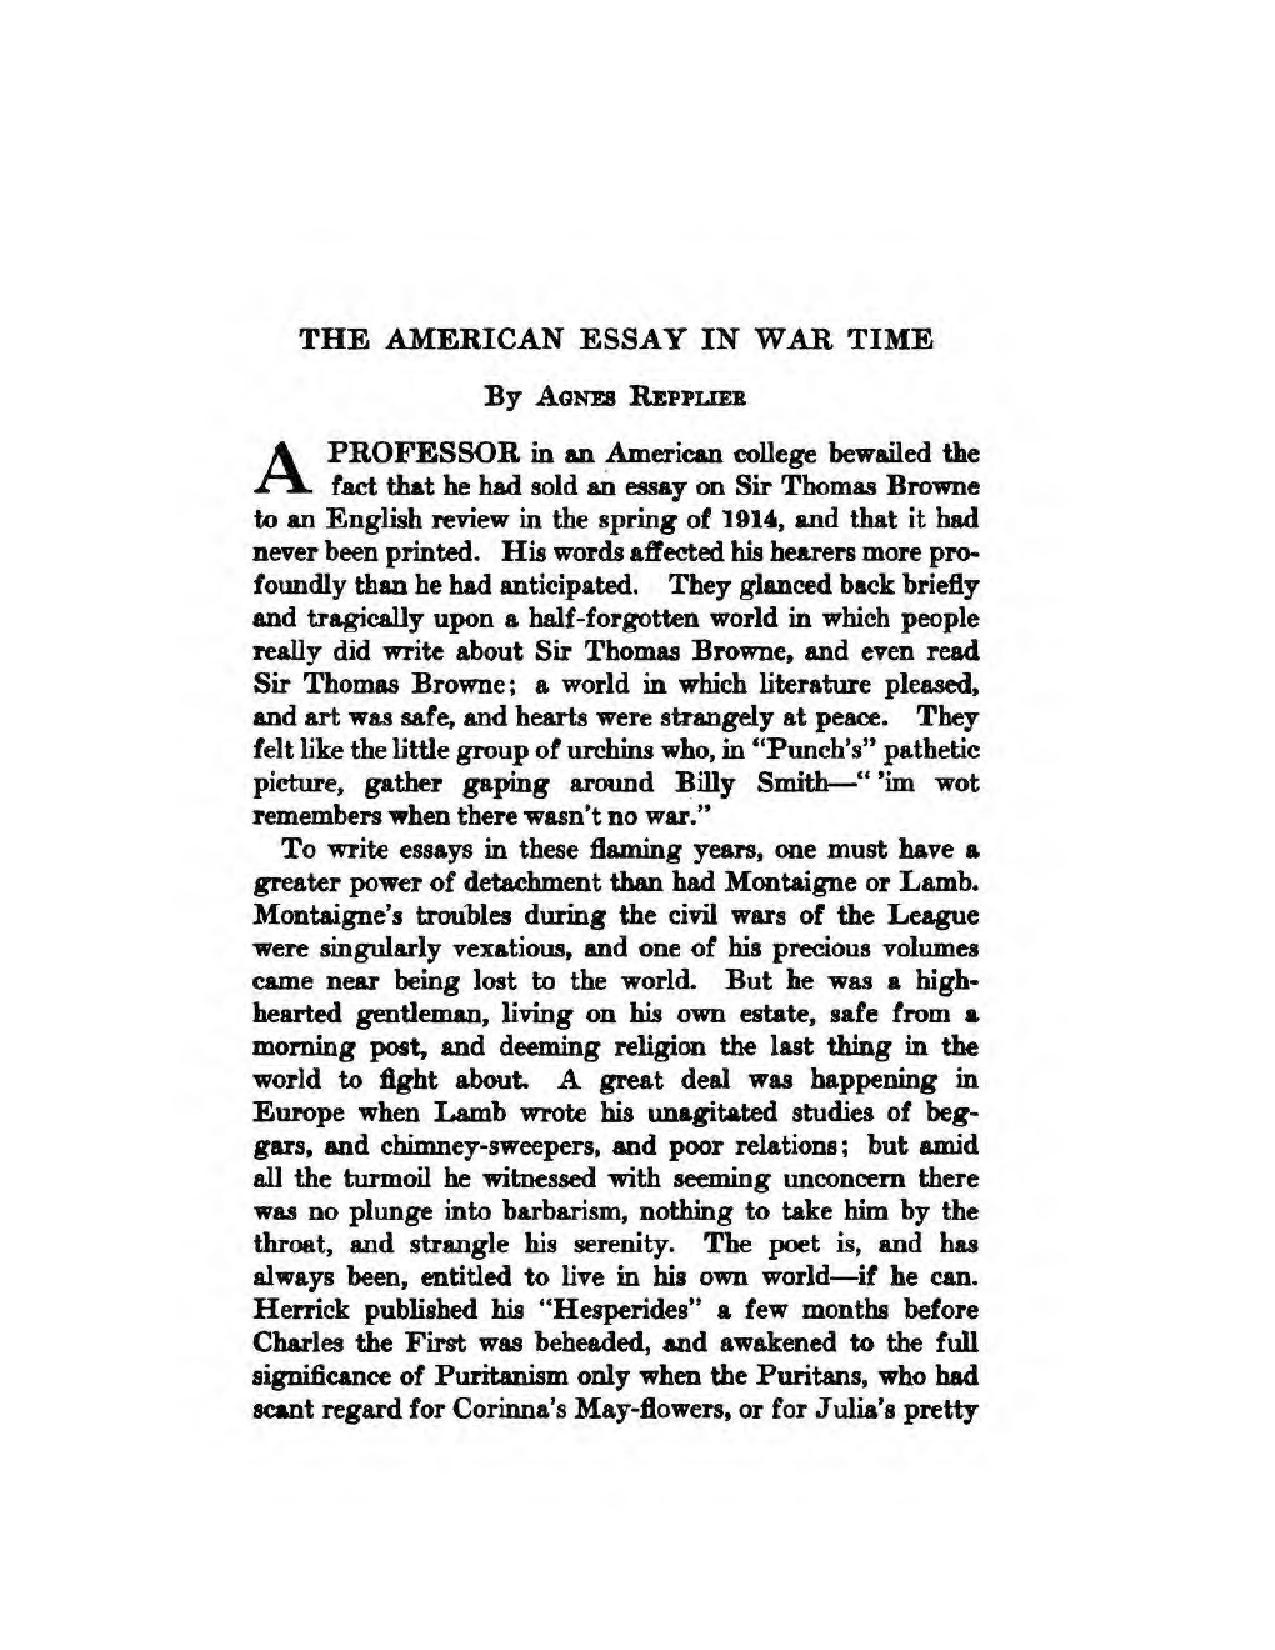 023 American Essay Example Page1 1275px The In War Time2c Agnes Repplier2c 1918 Striking Format Literature Topics Identity Titles Full